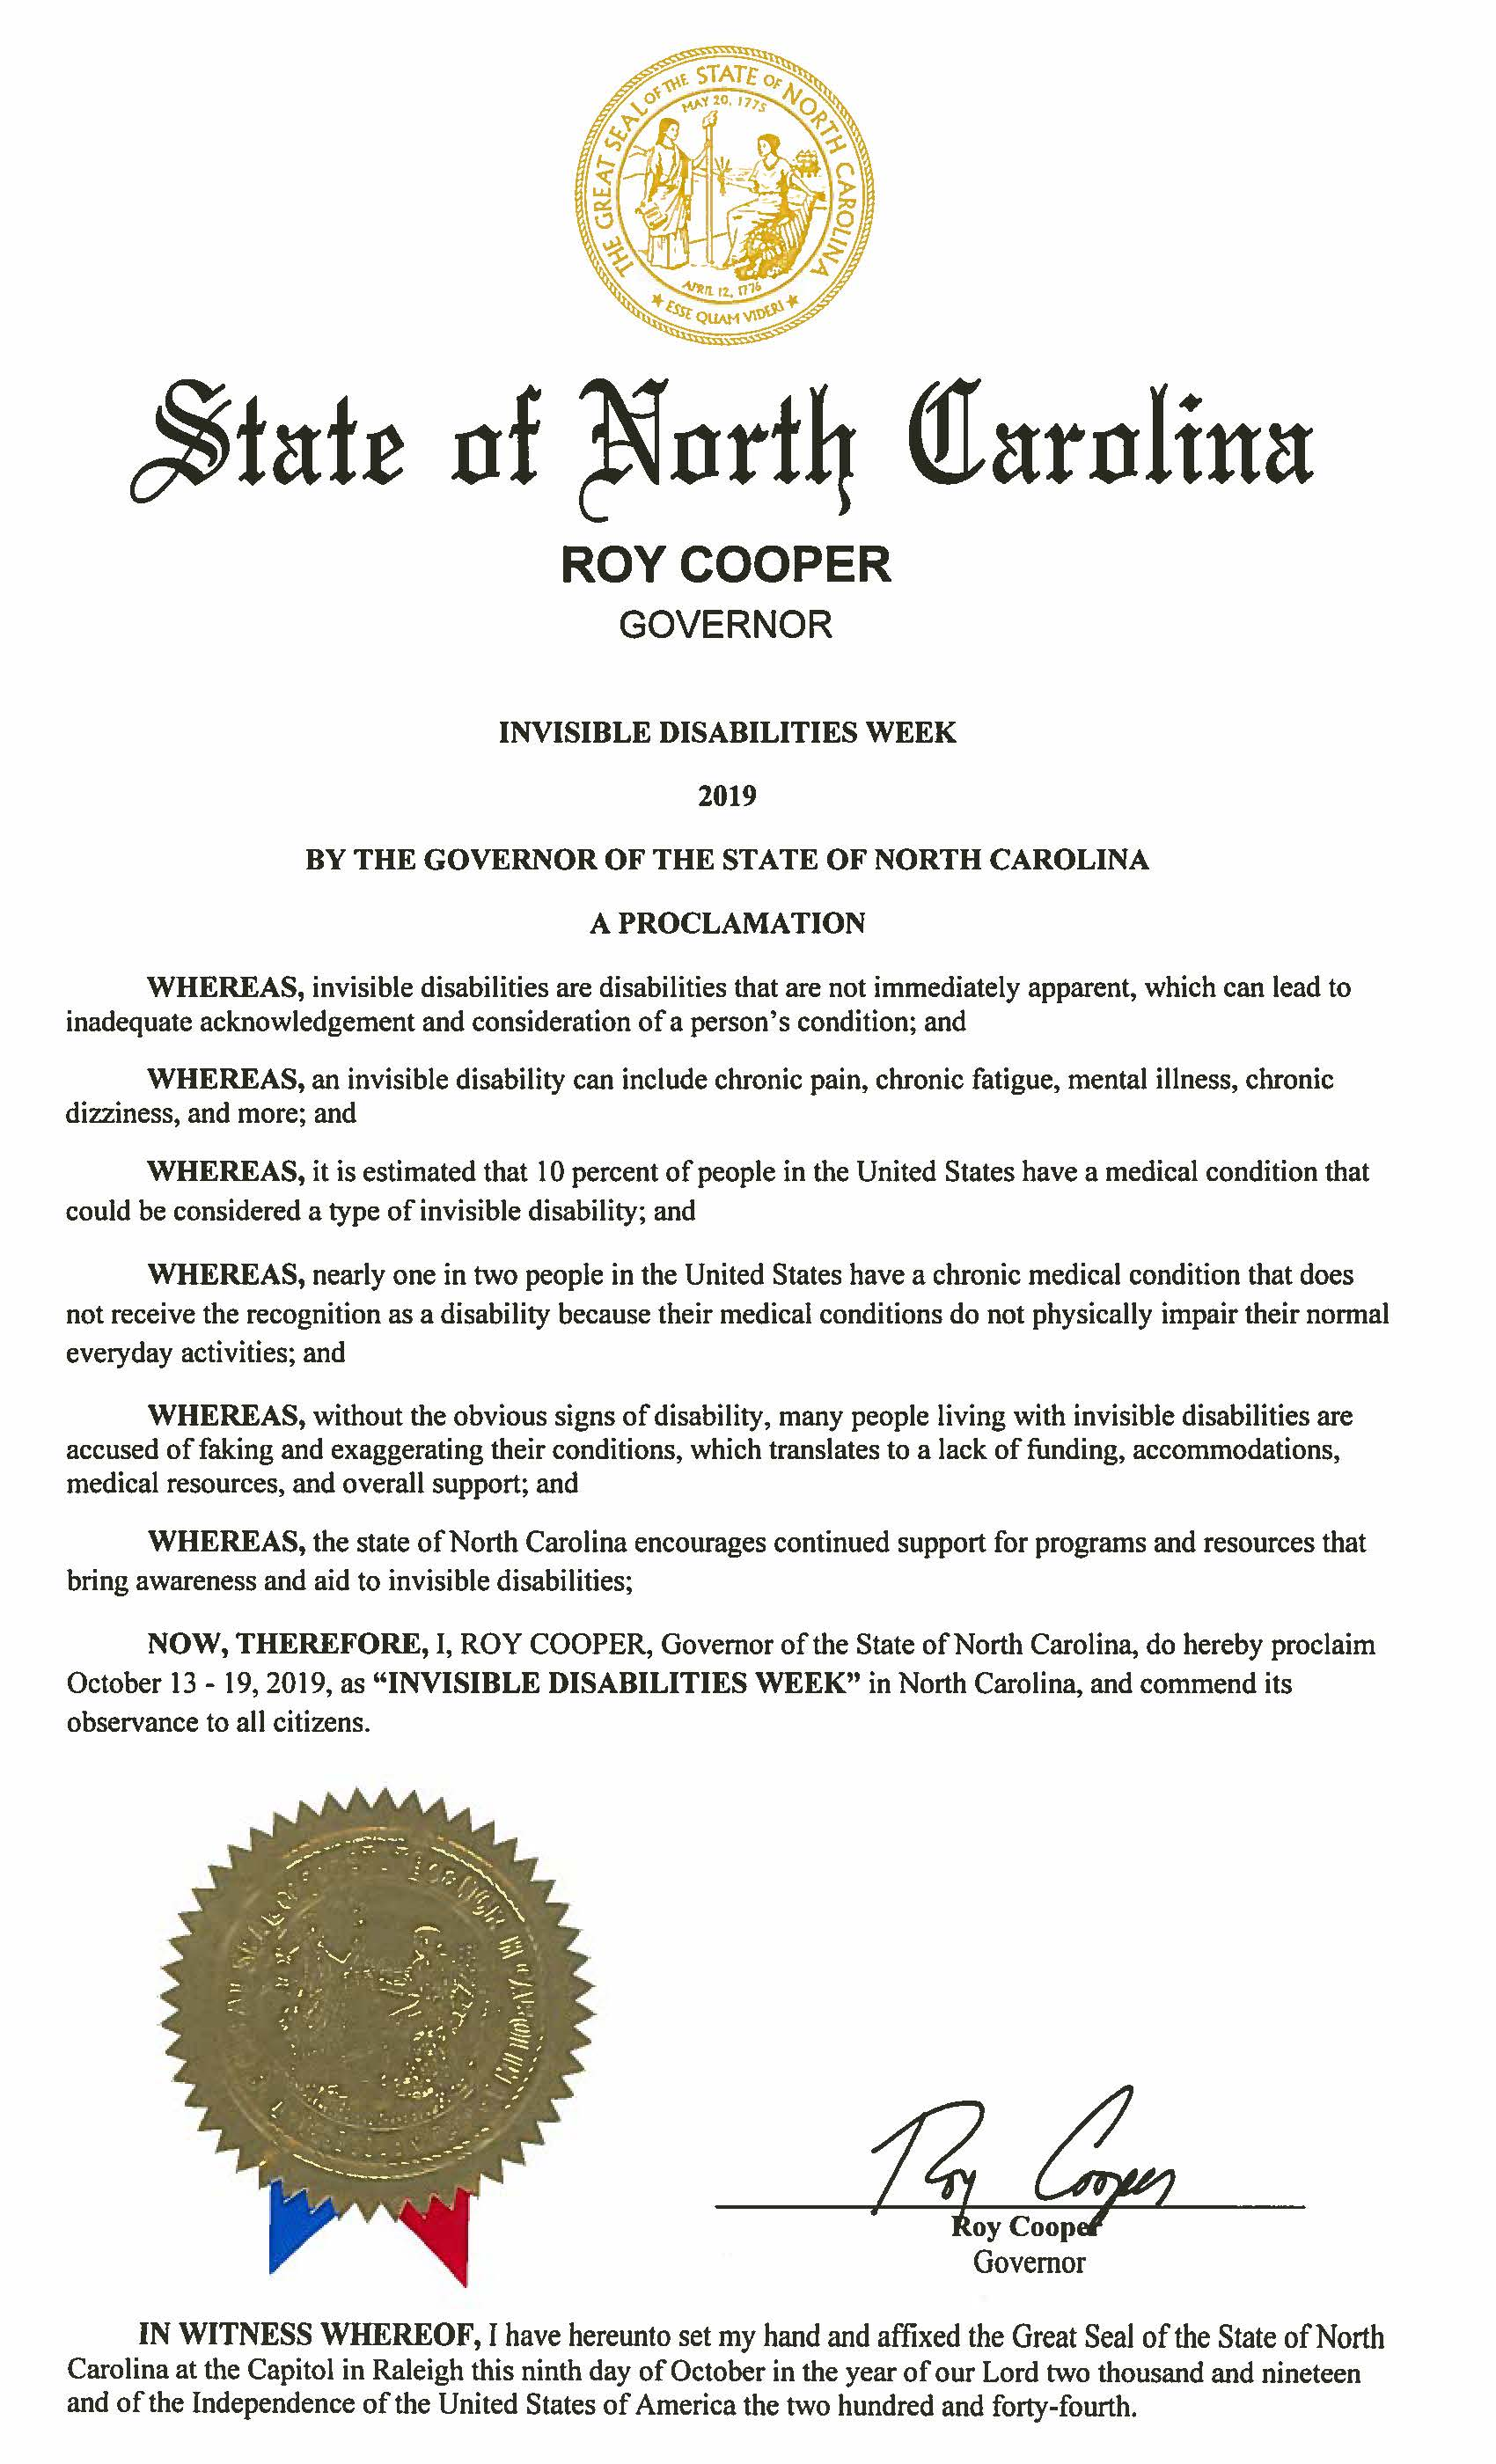 State of North Carolina - Invisible Disabilities Week Proclamation 2019